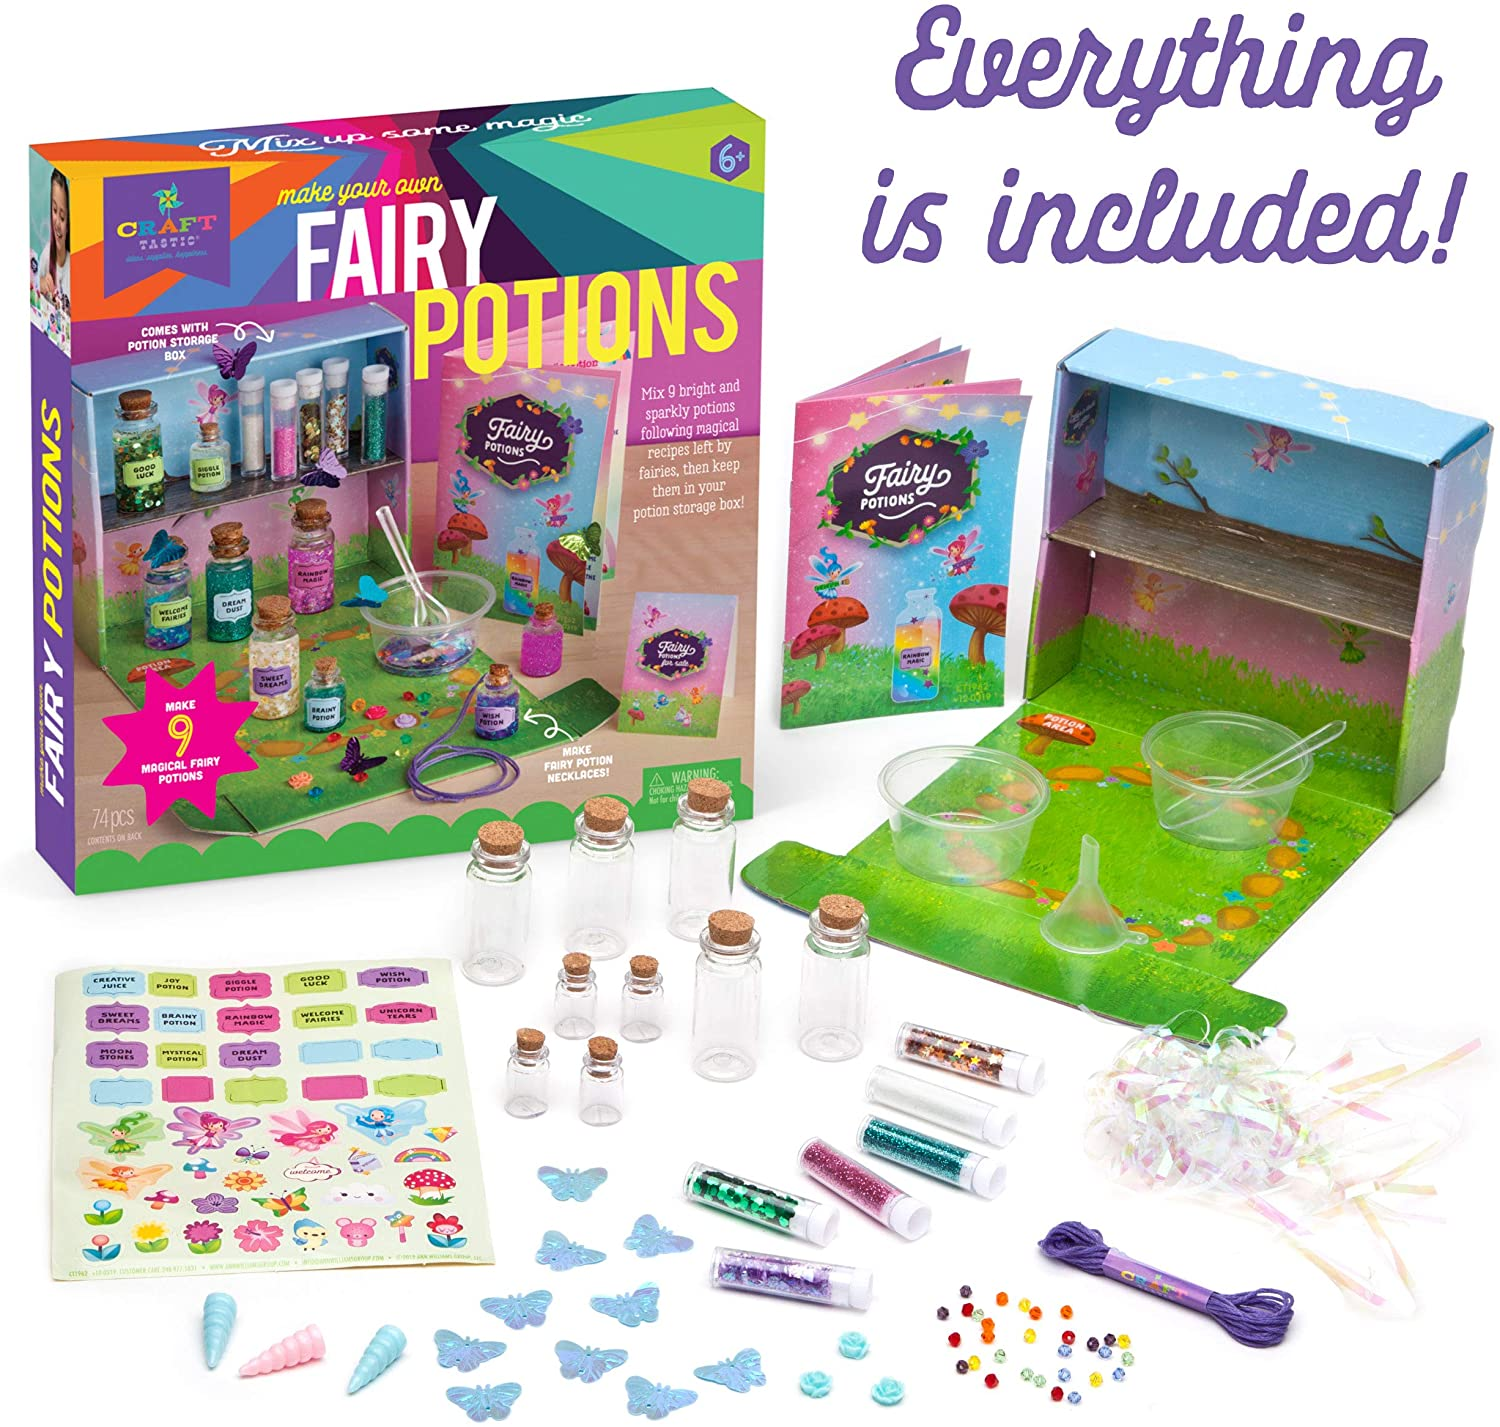 Materials included in Fairy Potions Craft Kit